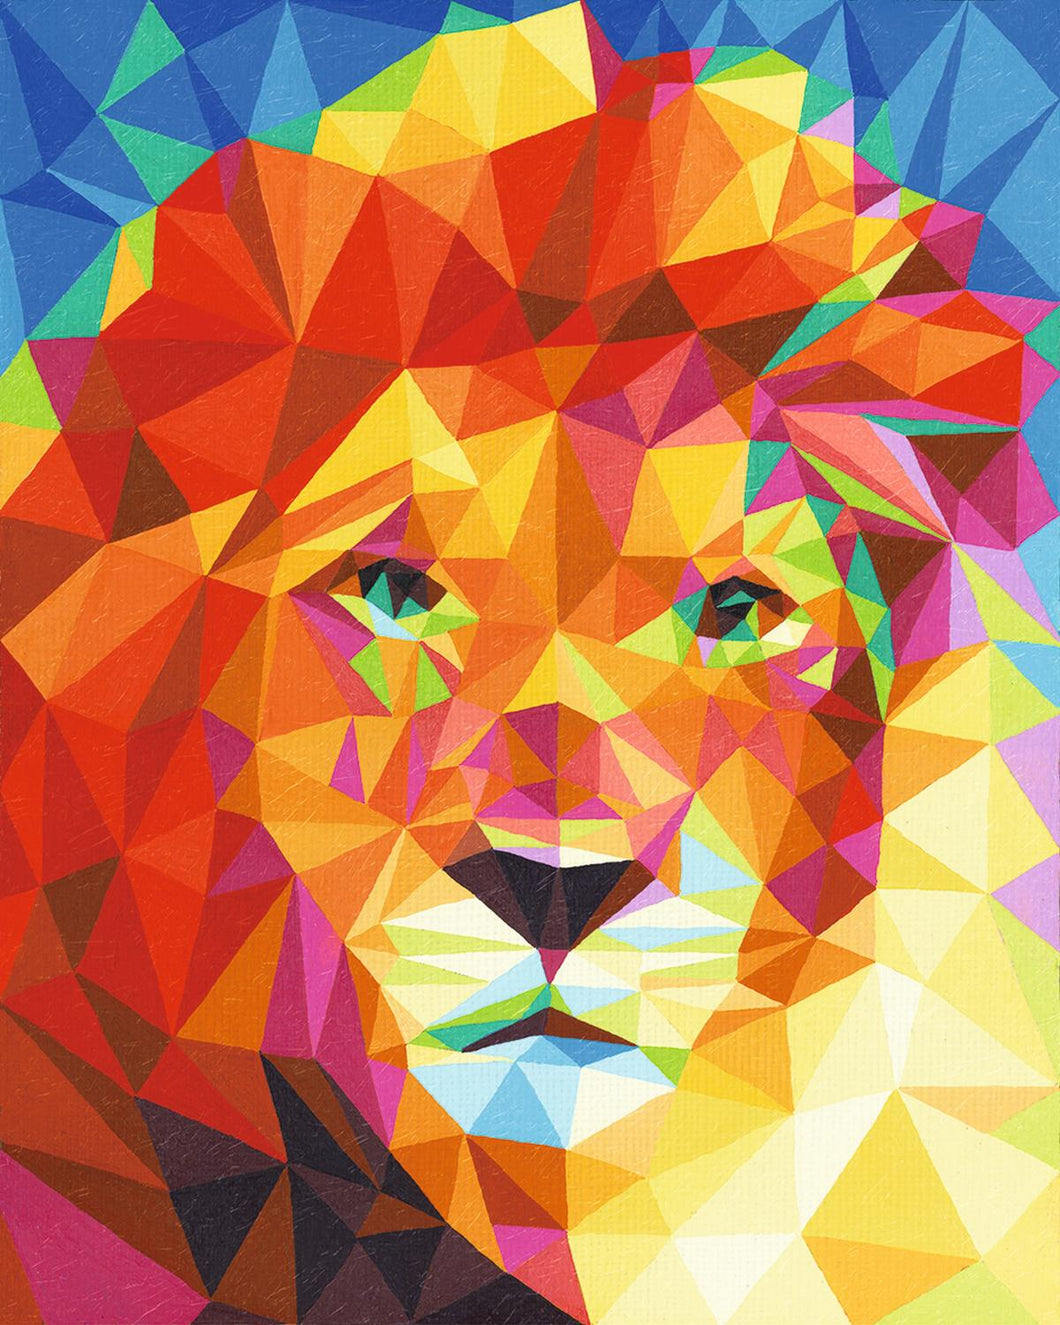 Lion Polygon Art